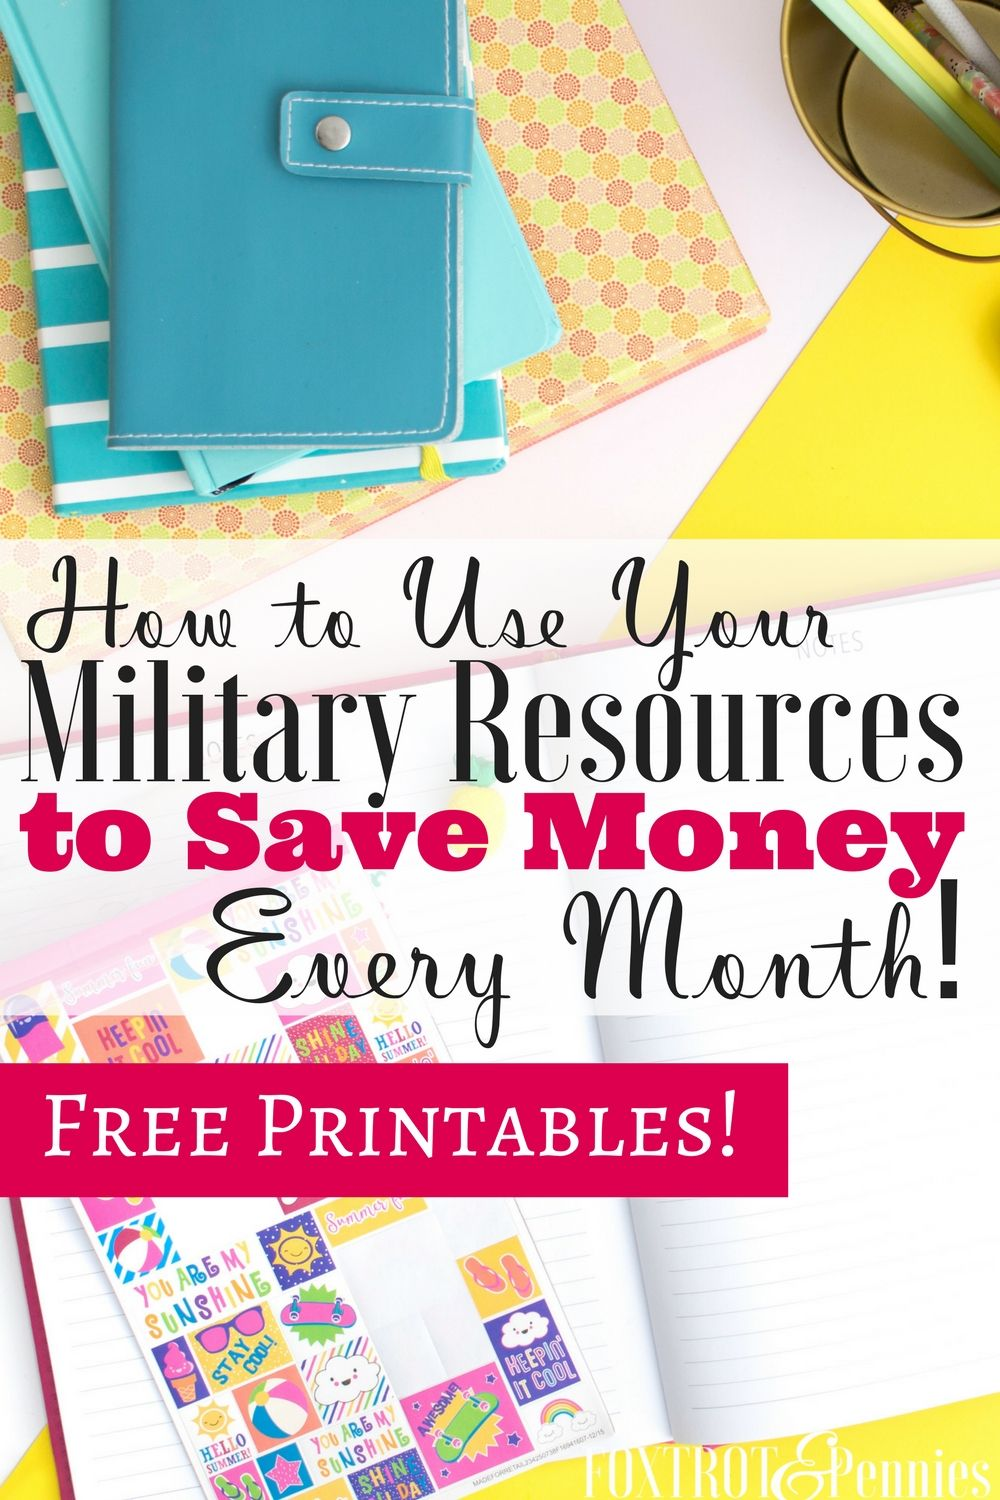 Learn how to save money on every day expenses by using